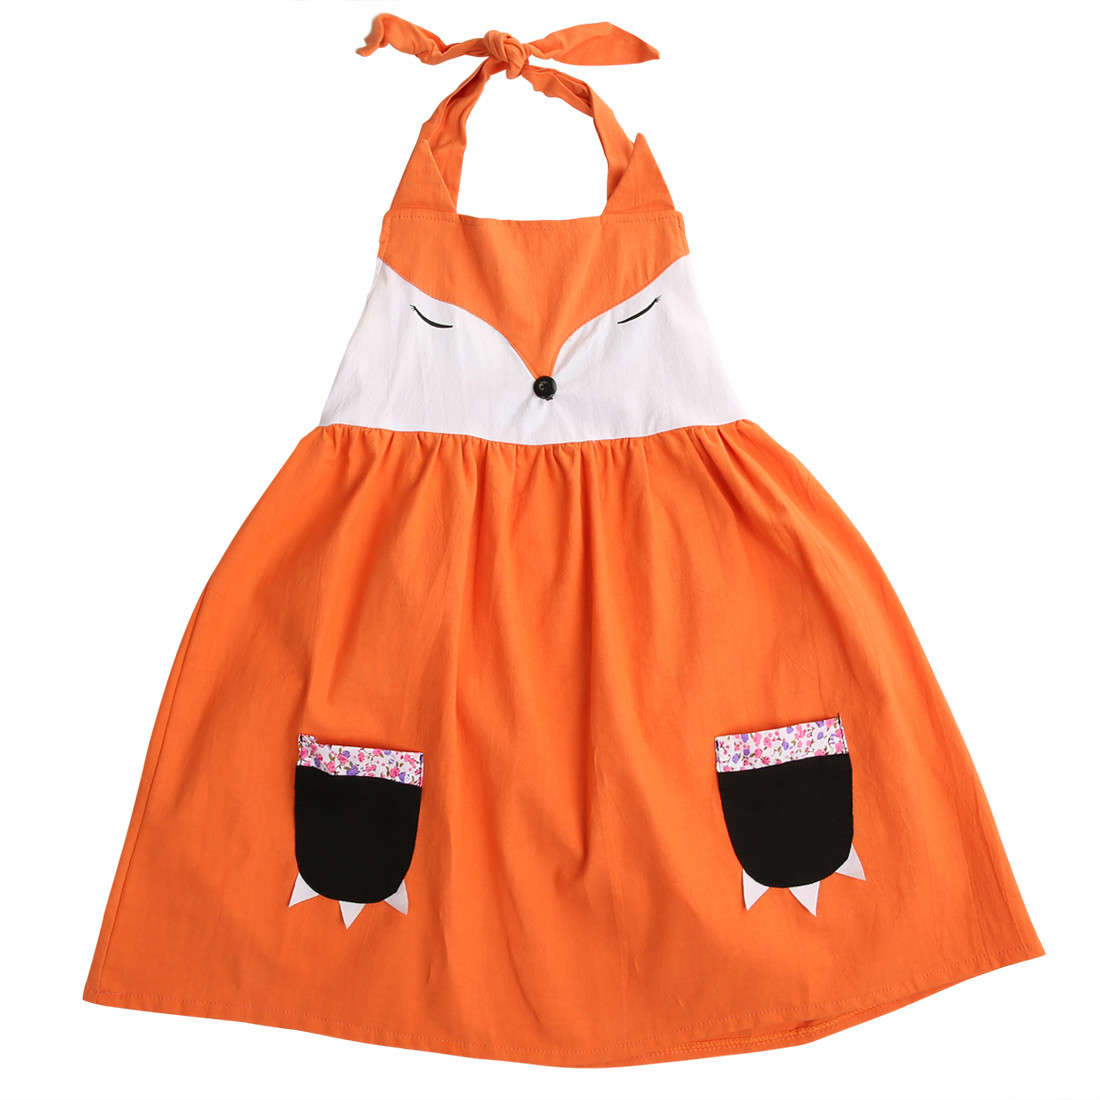 Baby Girls Dress 2017 Cute Animal Infant Toddler Kids Girls Fox Wedding Birthday Party Pageant Casual Dresses toddler kids baby girls princess dress party pageant wedding dresses with waistband